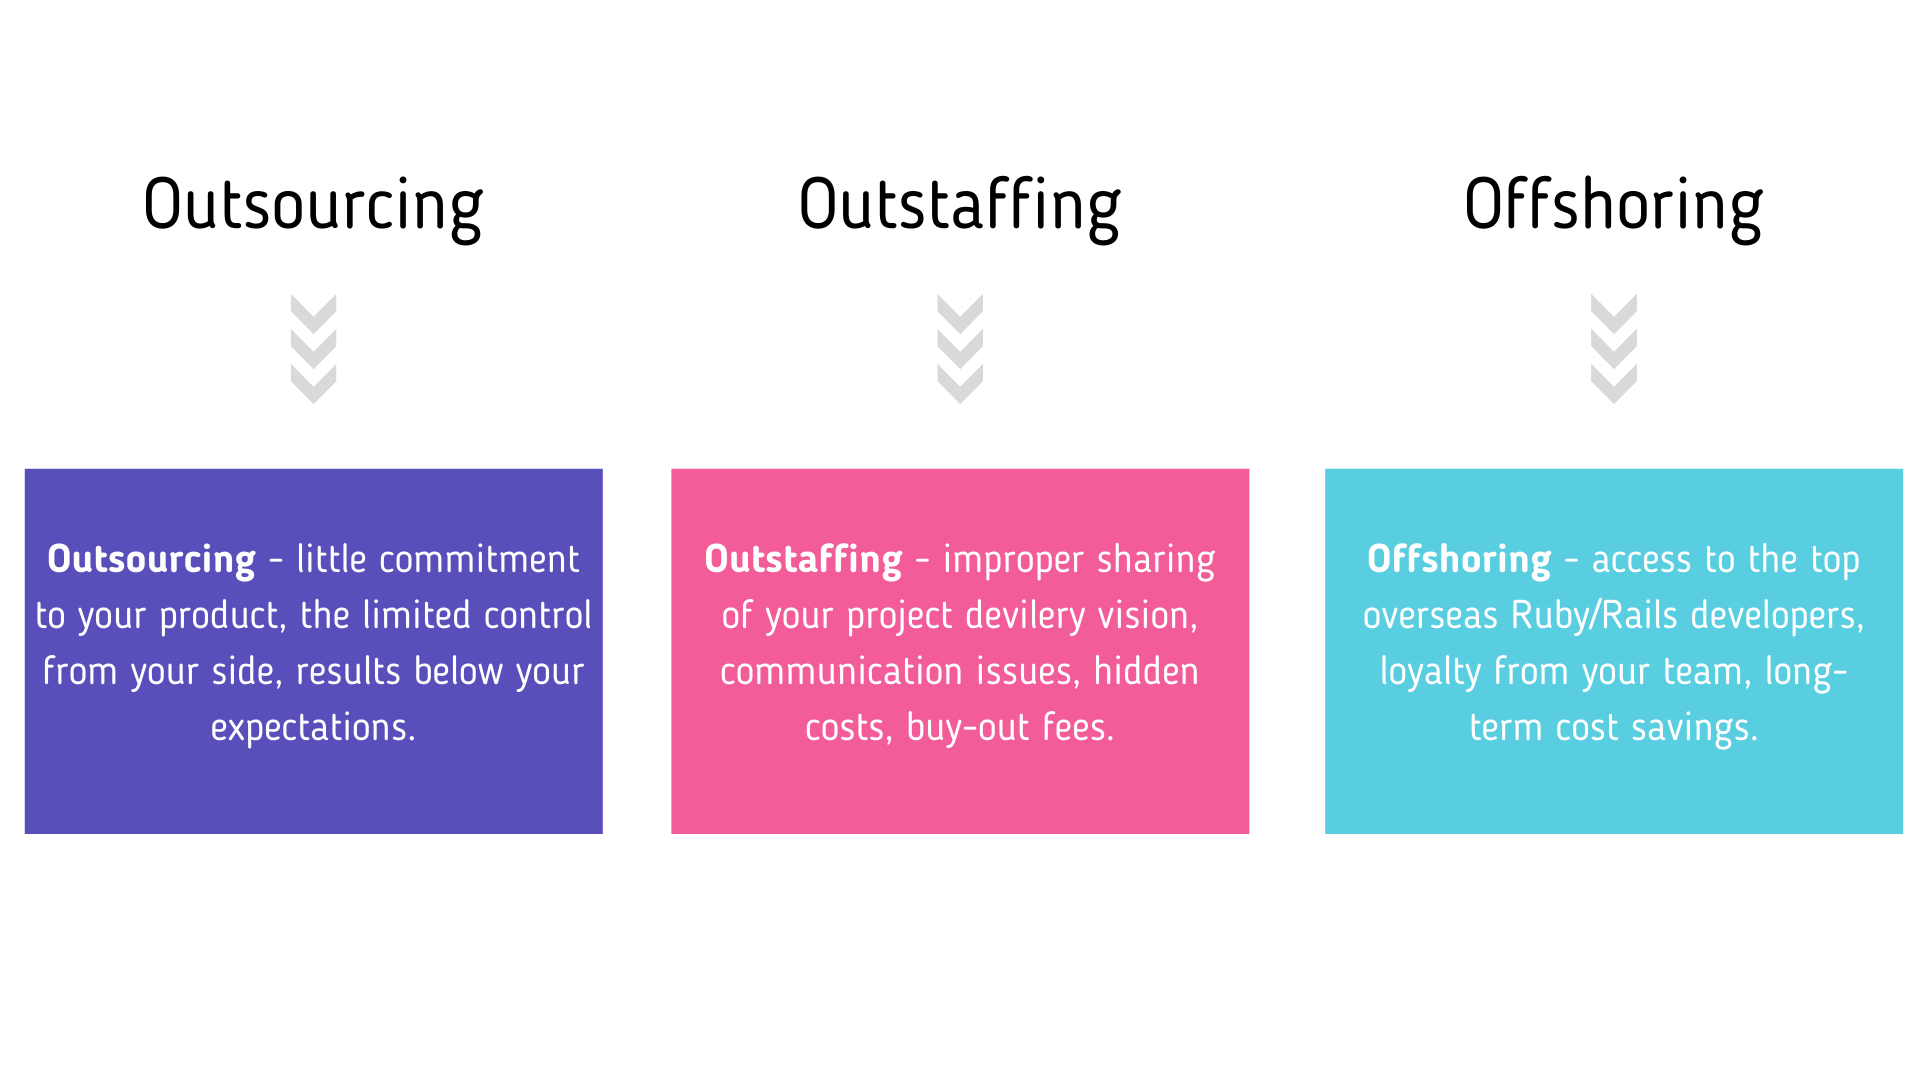 offshoring-models-compared